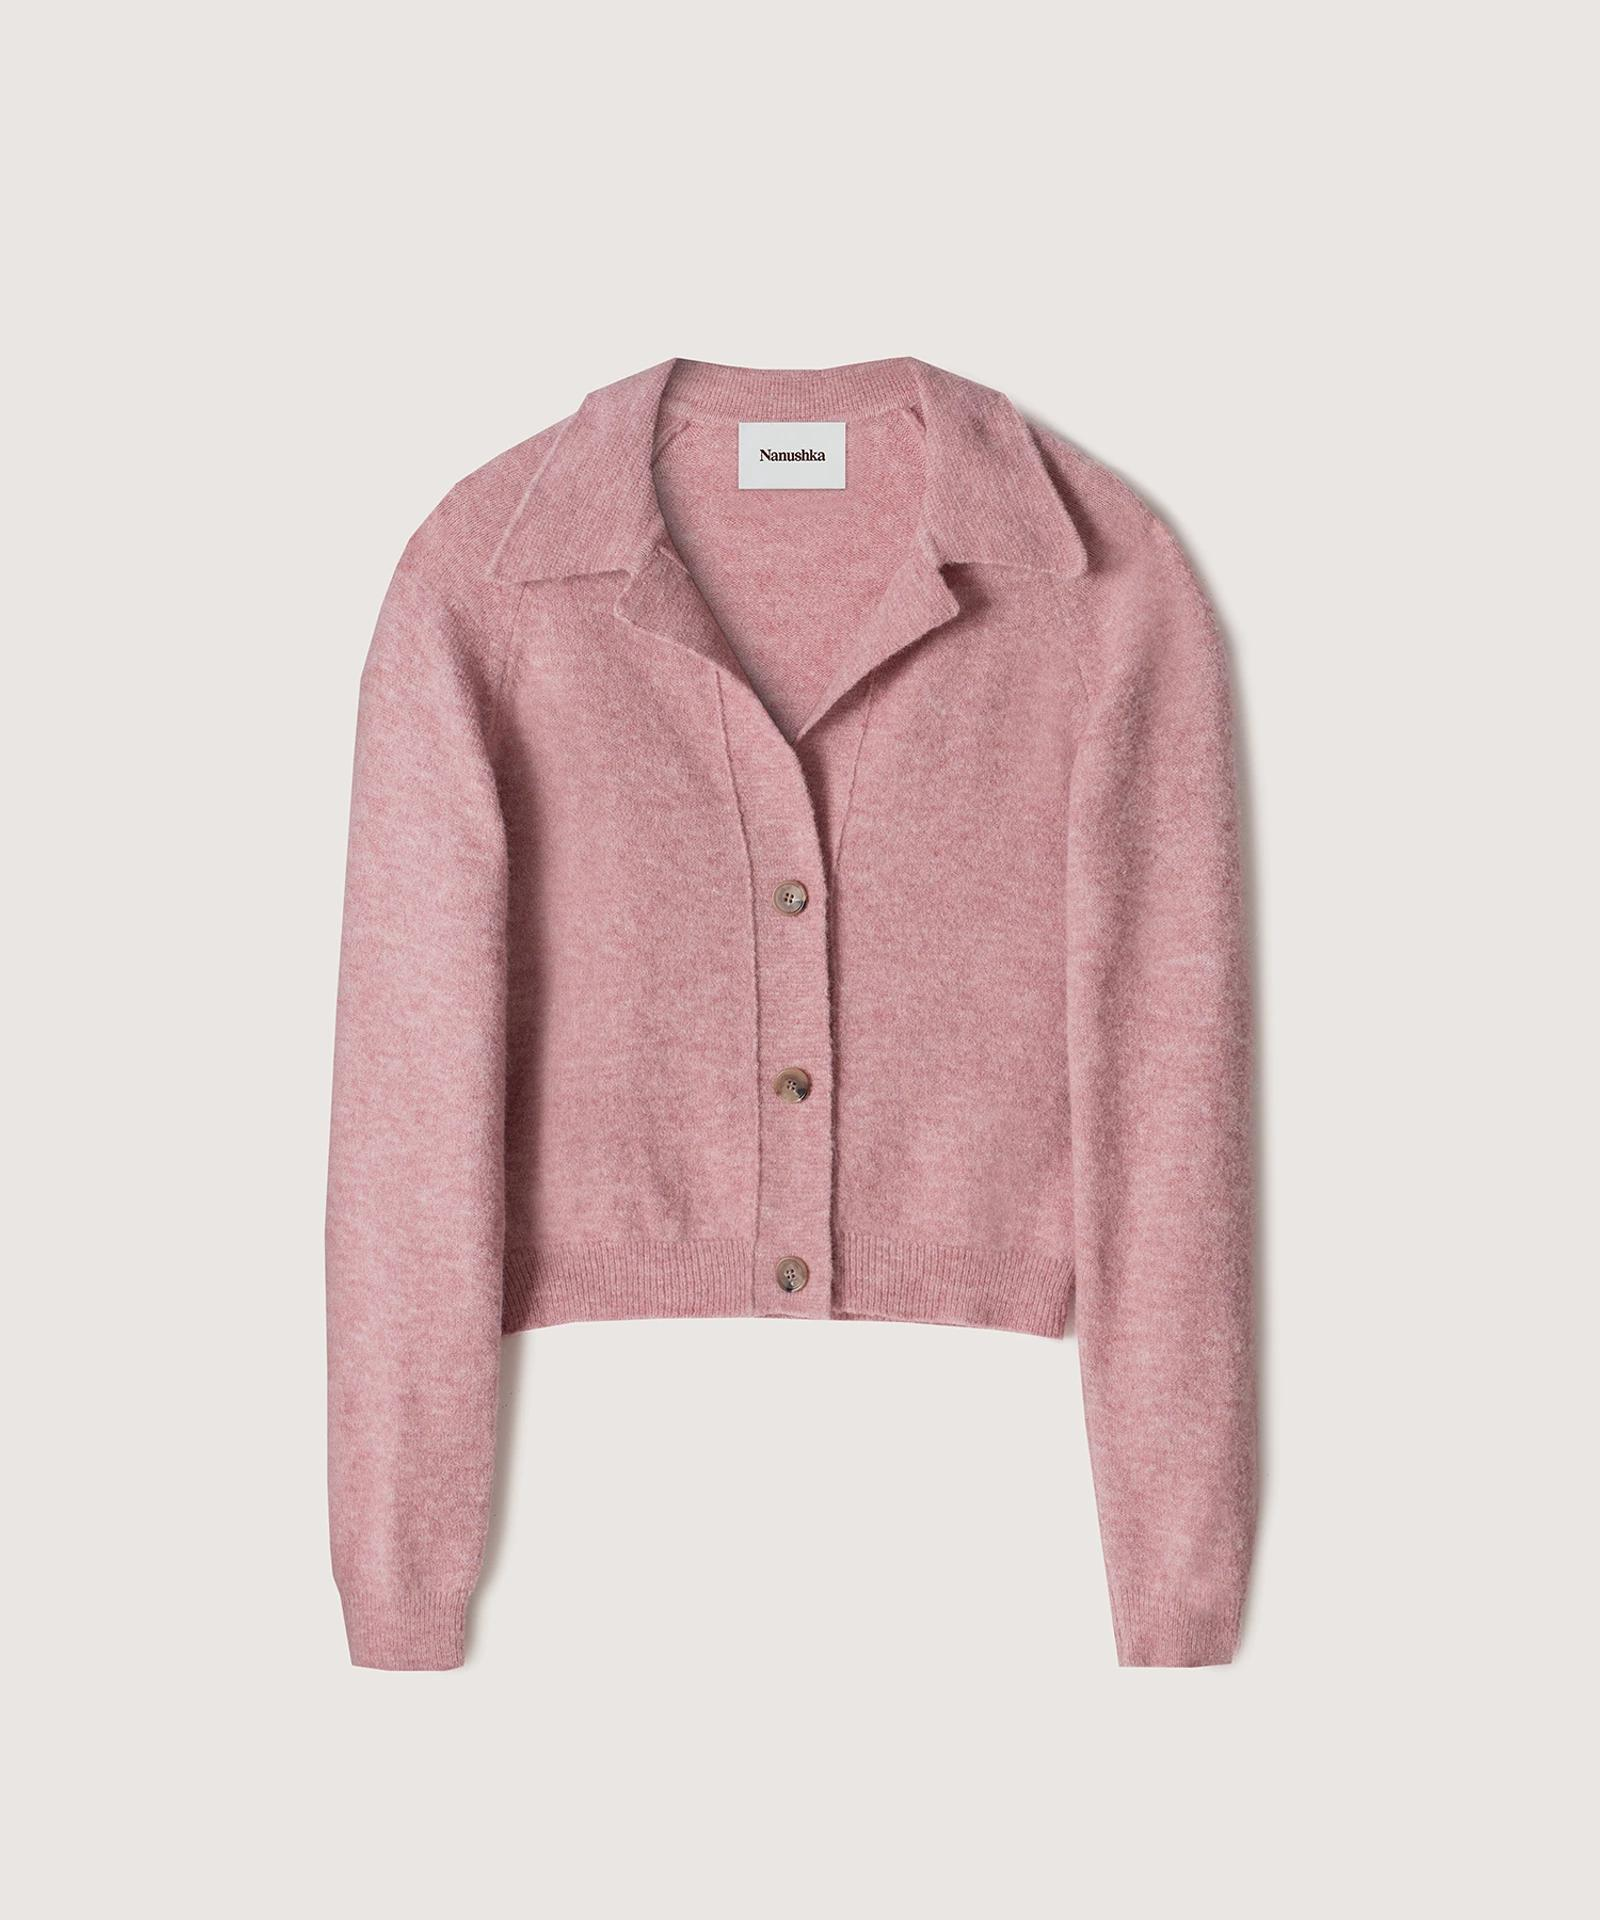 CADE - Fluffy-knit cardigan - Washed pink 3